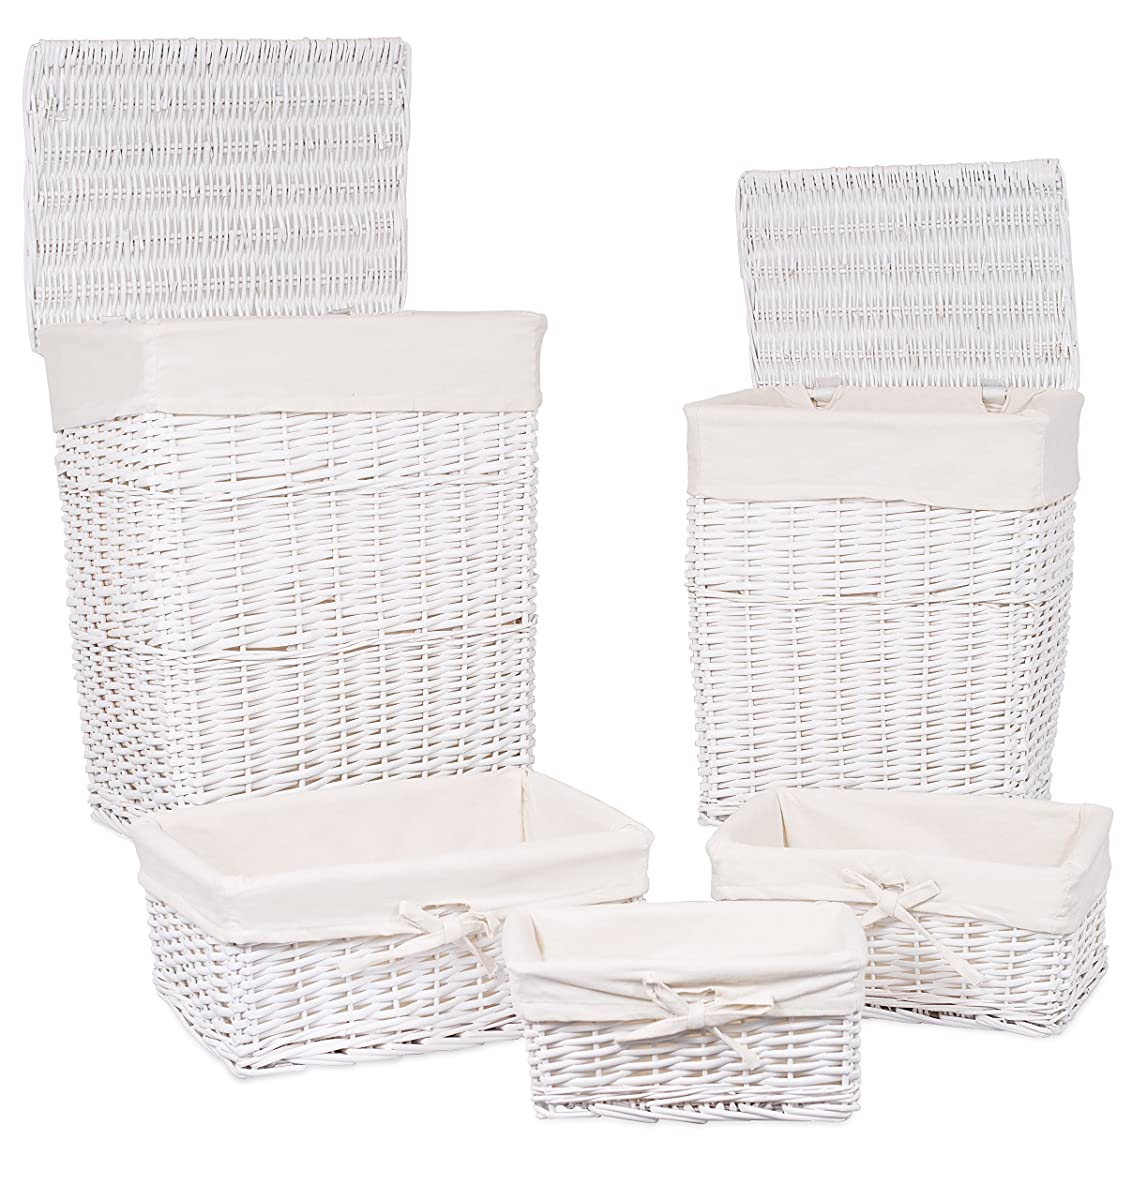 White Hamper With Liner Birdrock Home Woven Willow Baskets With Liner Set Of 5